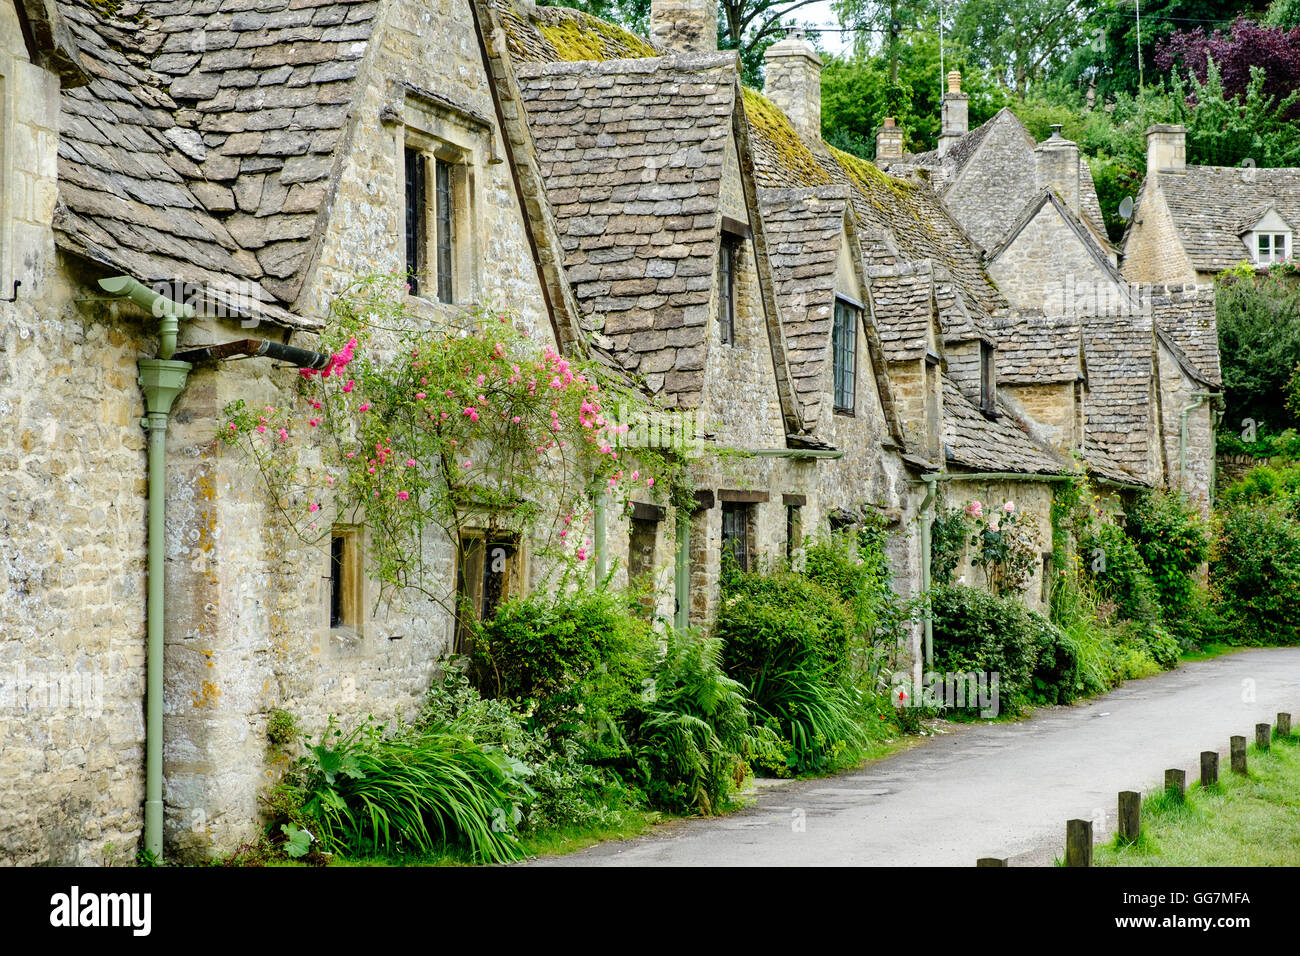 Arlington Row historic former weavers cottages in Bibury ,Gloucestershire, Cotswolds ,England - Stock Image